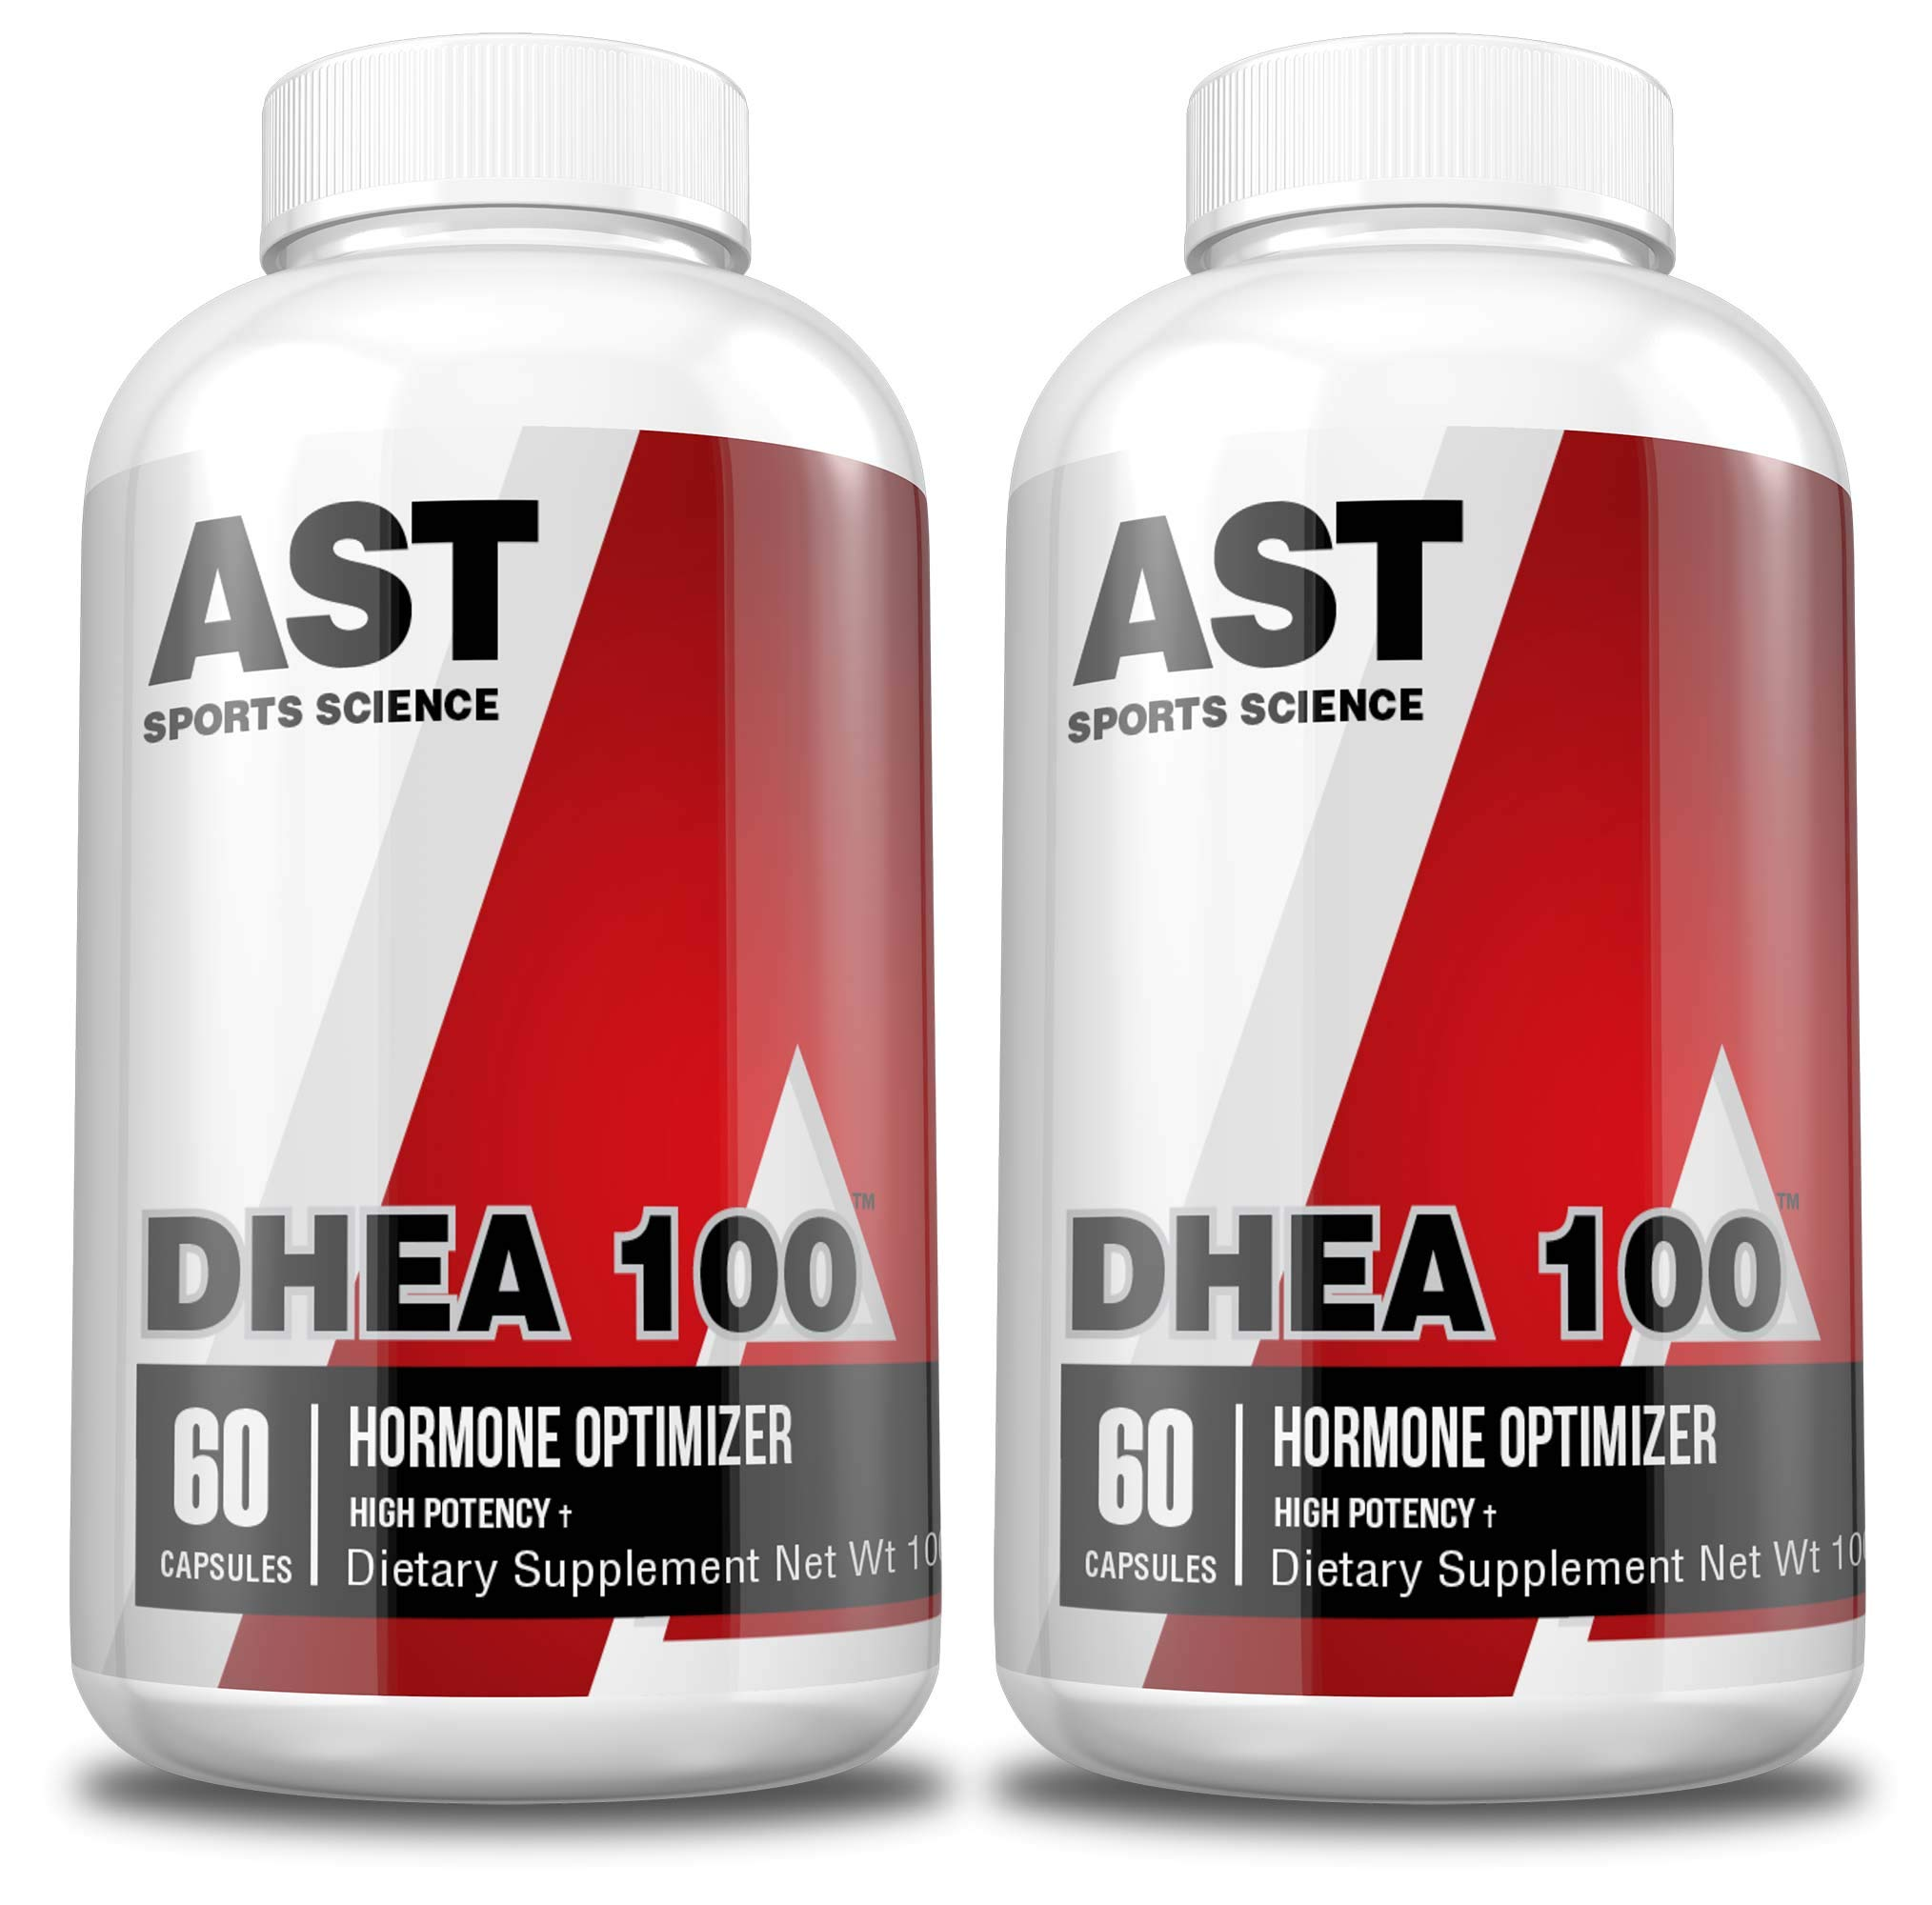 DHEA 100 - AST Sports Science 100mg per Capsule - for Supporting Lean Muscle and Decreased Body Fat, Promoting Energy, and Supporting Healthy Aging in Both Men and Women. (2-Pack)